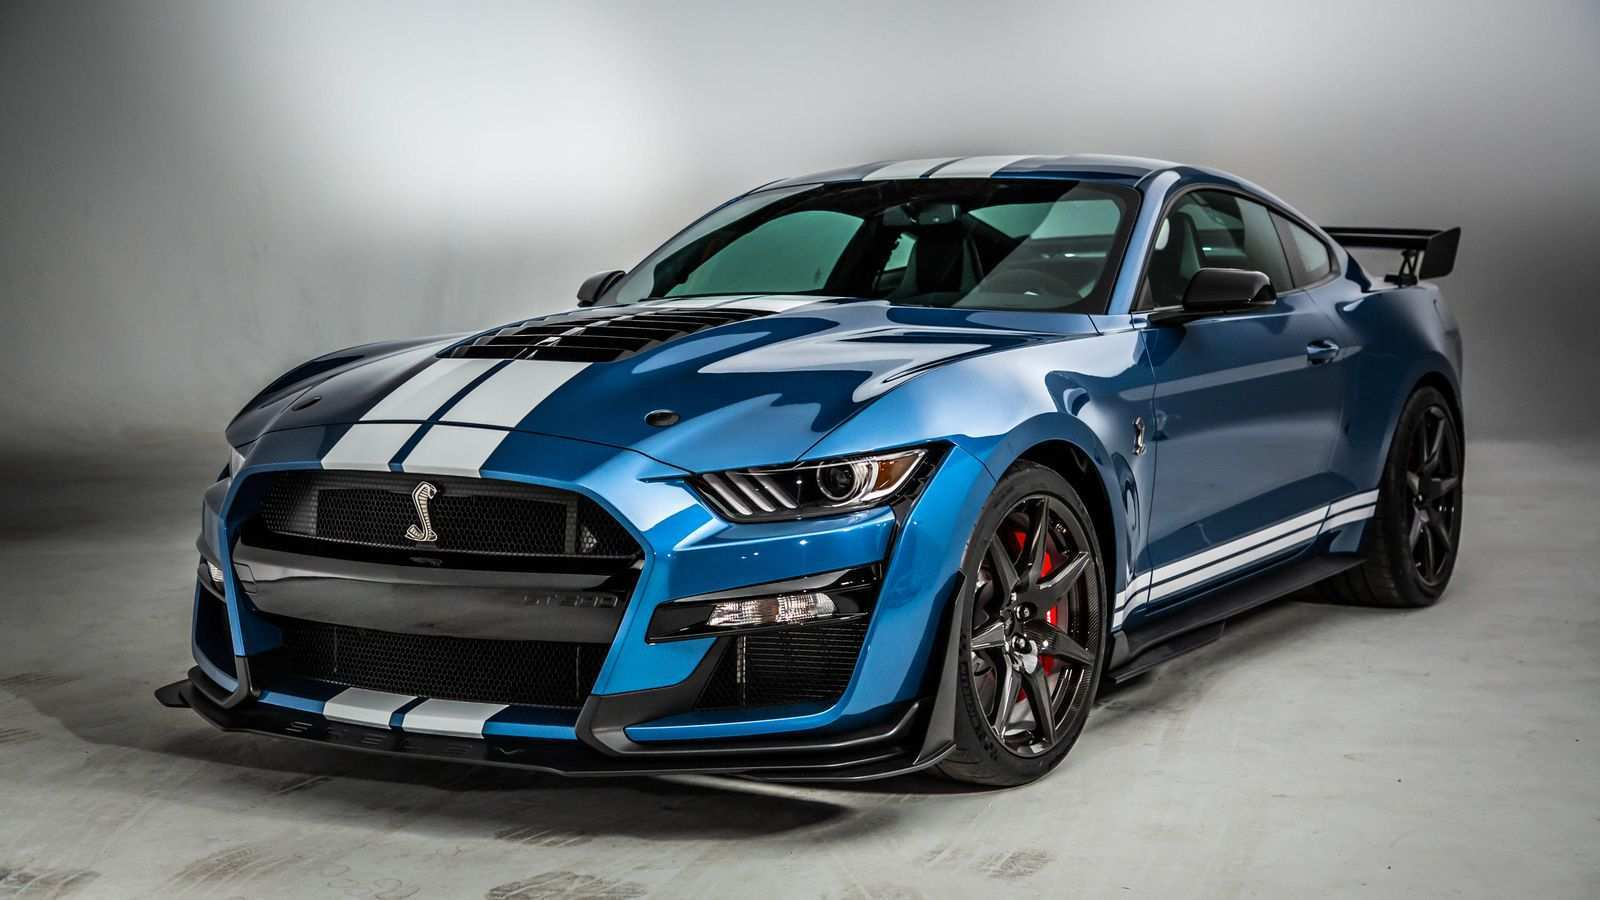 41 The Best 2019 Ford Mustang Shelby Gt500 New Model And Performance